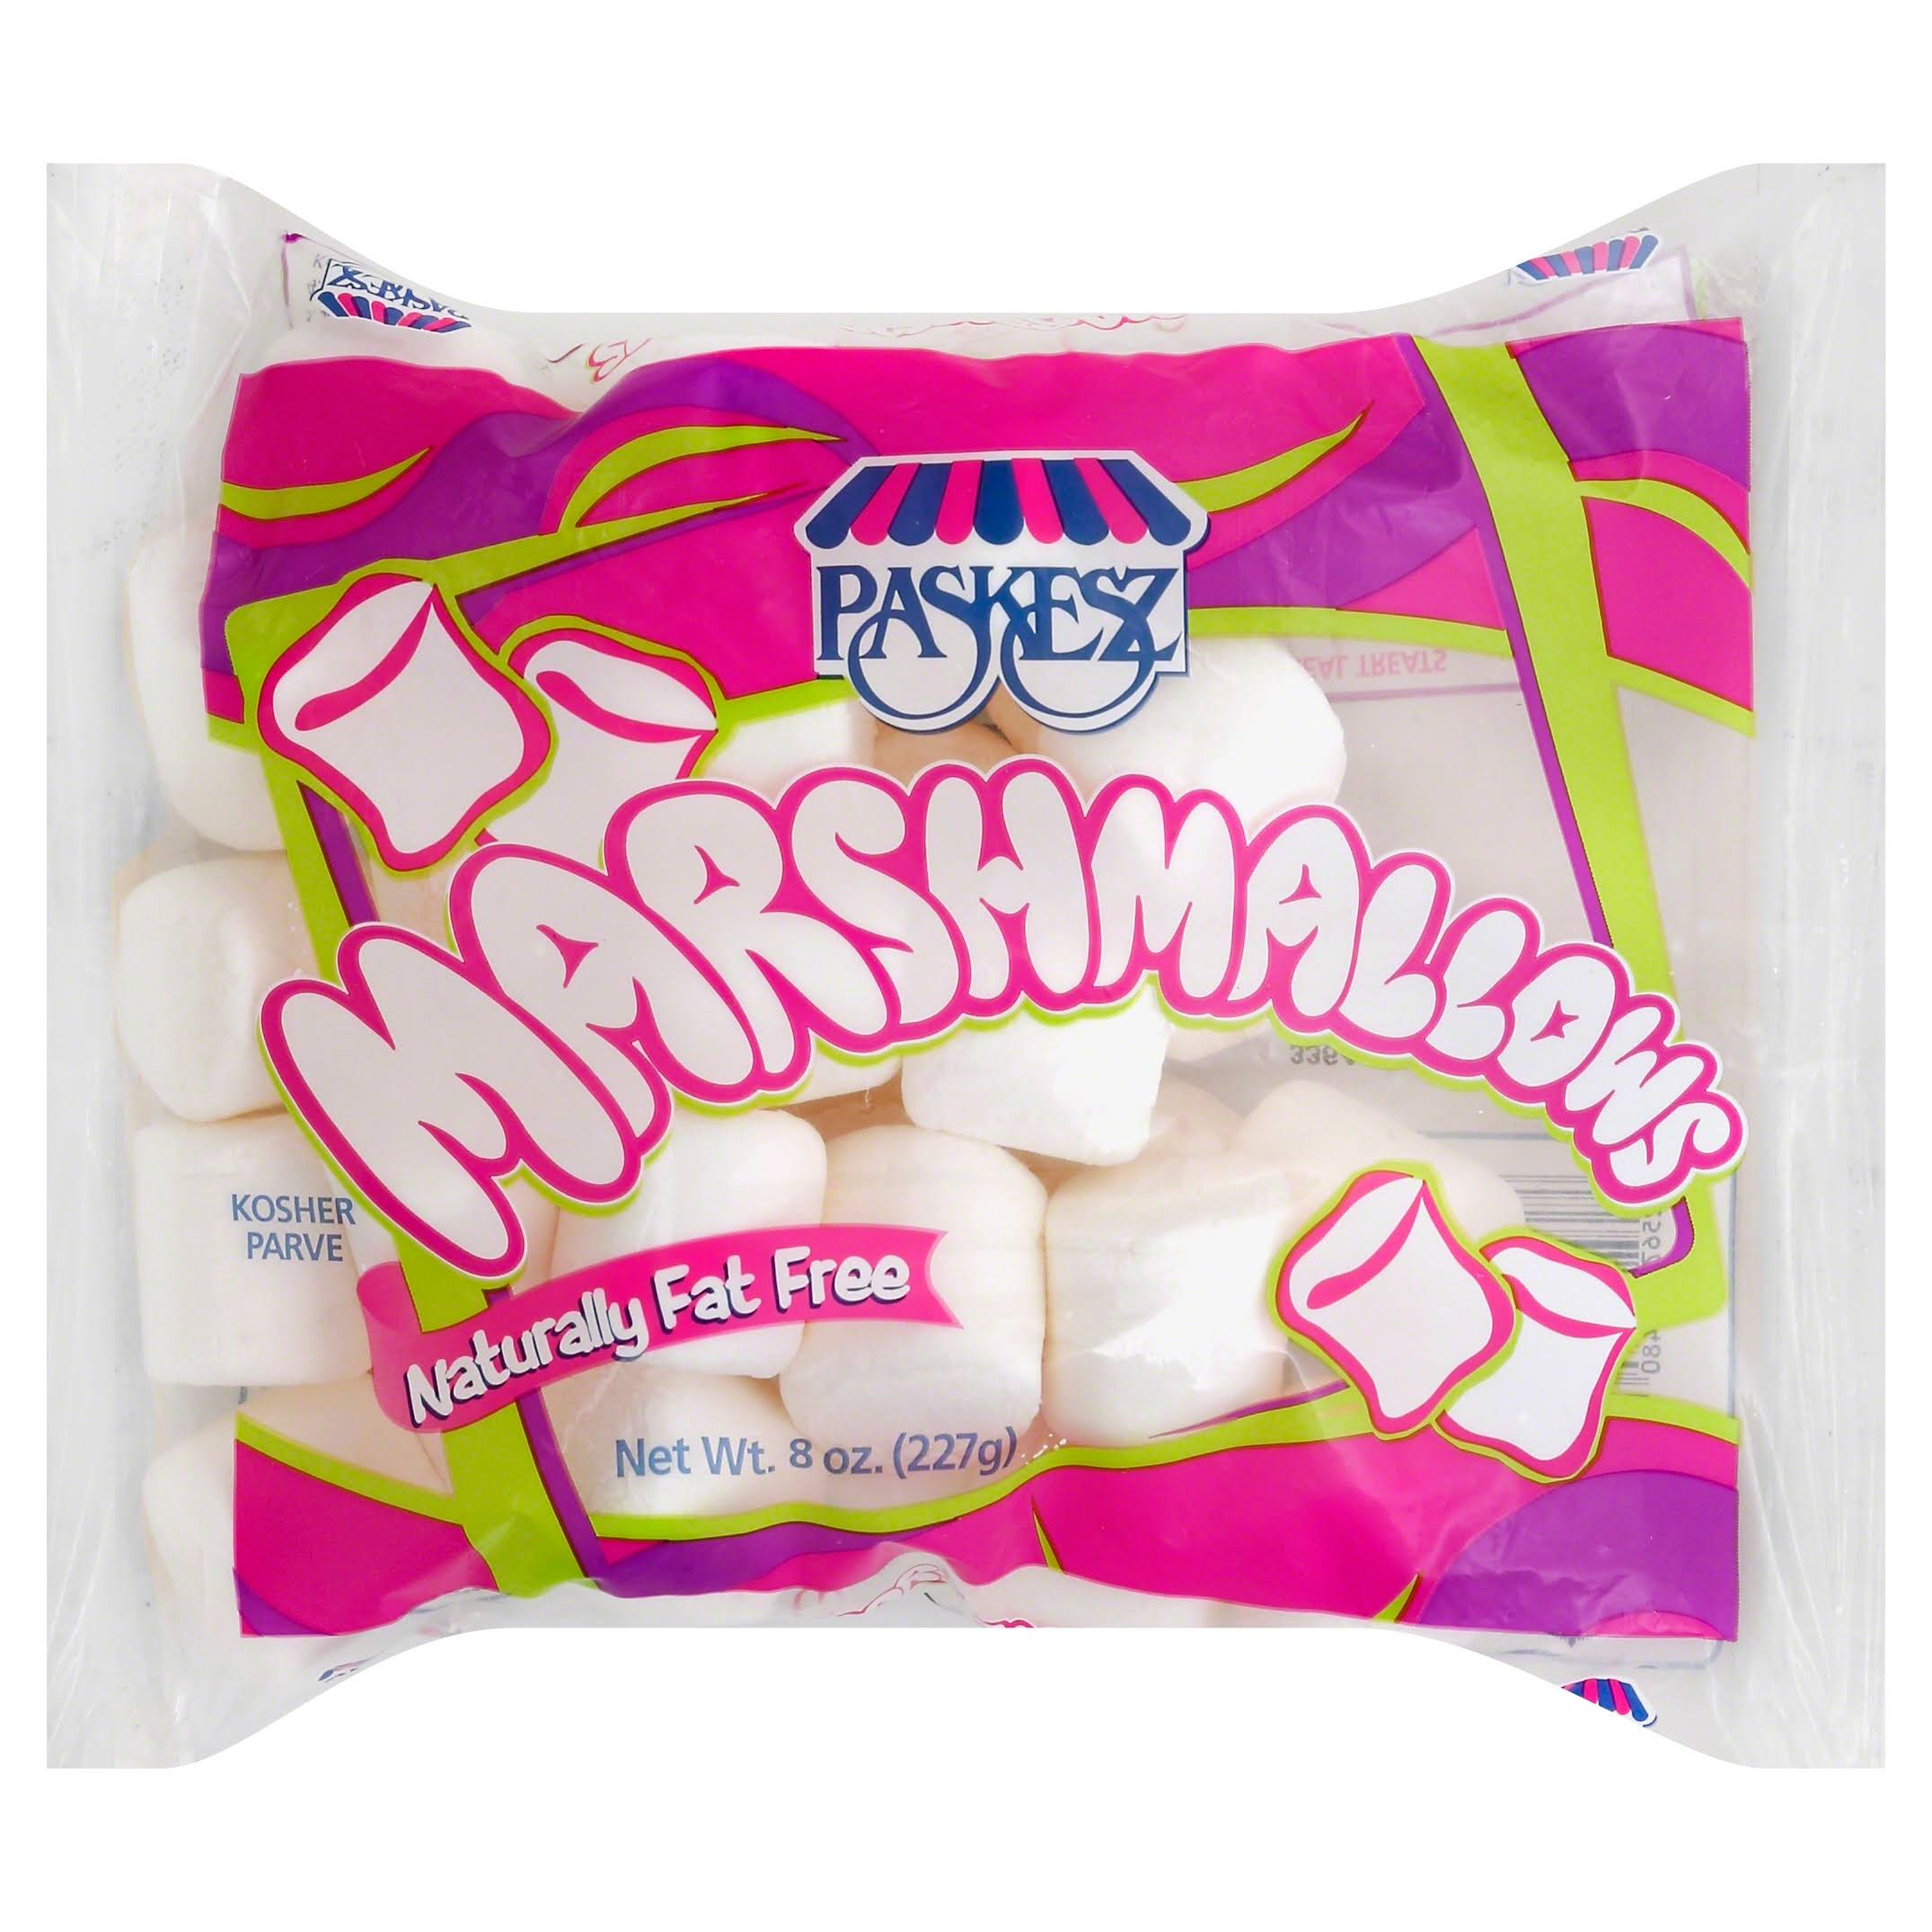 Paskesz Naturally Fat-Free Marshmallows - 8oz